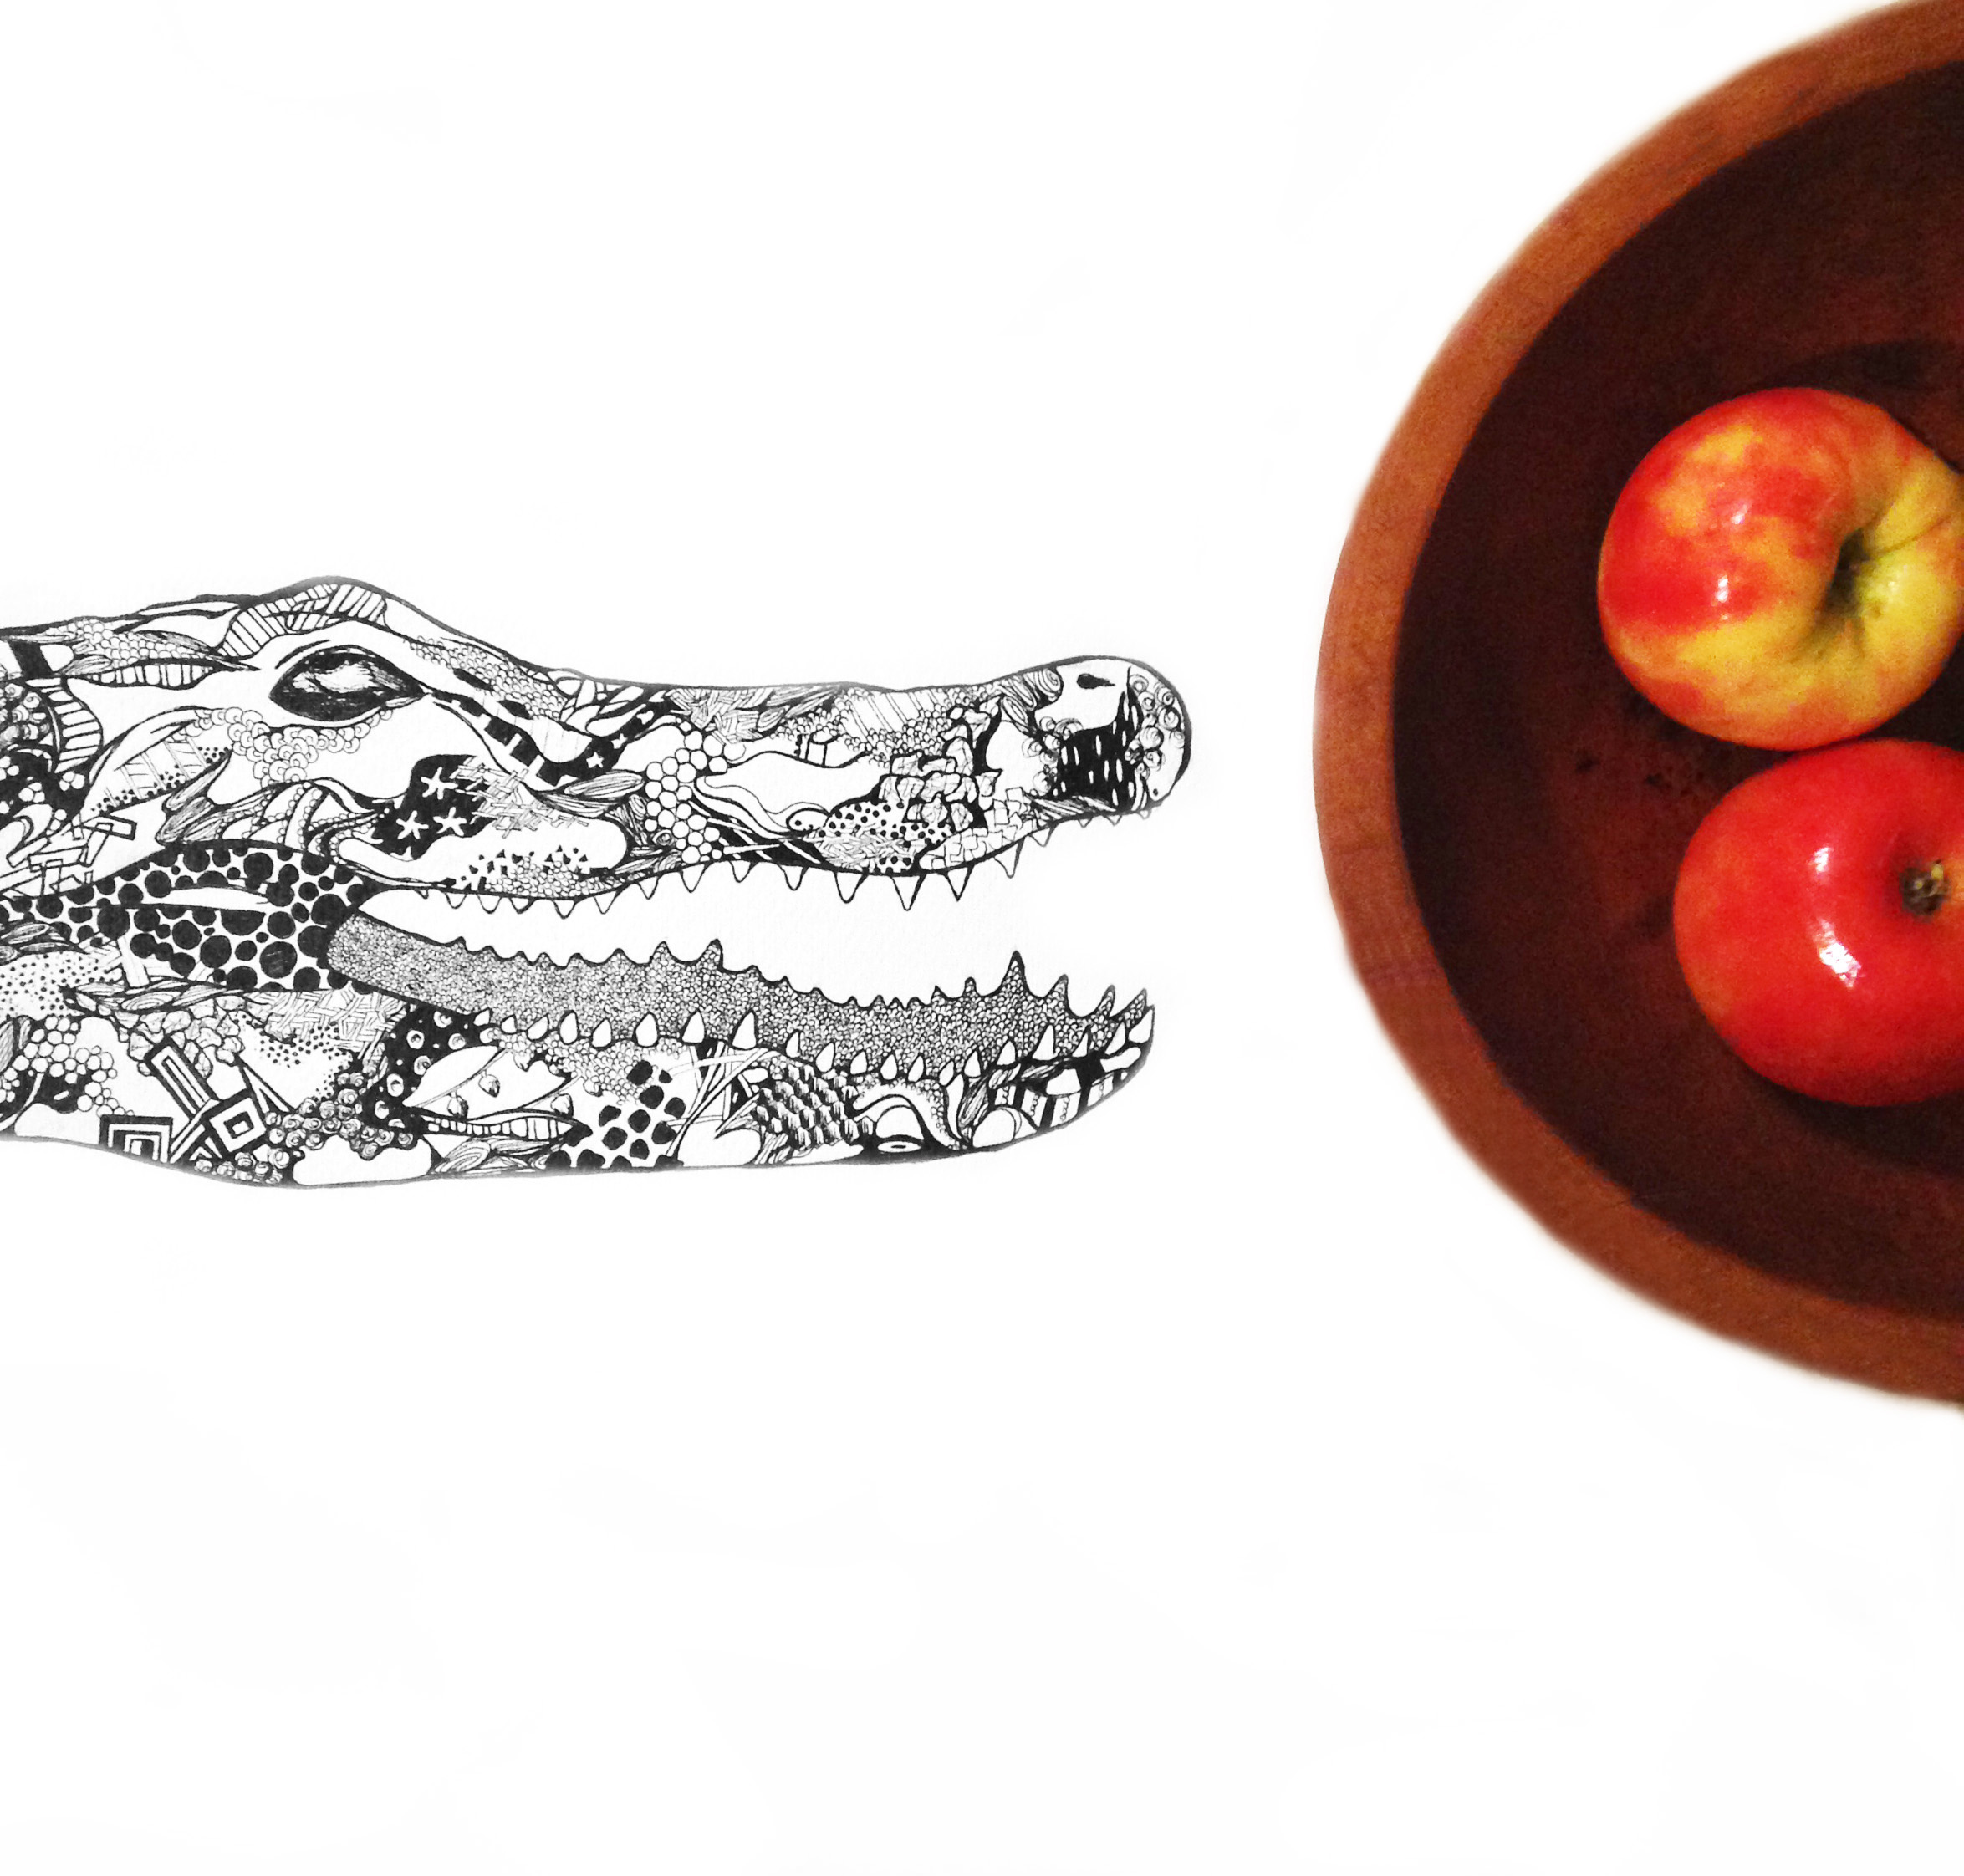 Crocodile apple copy